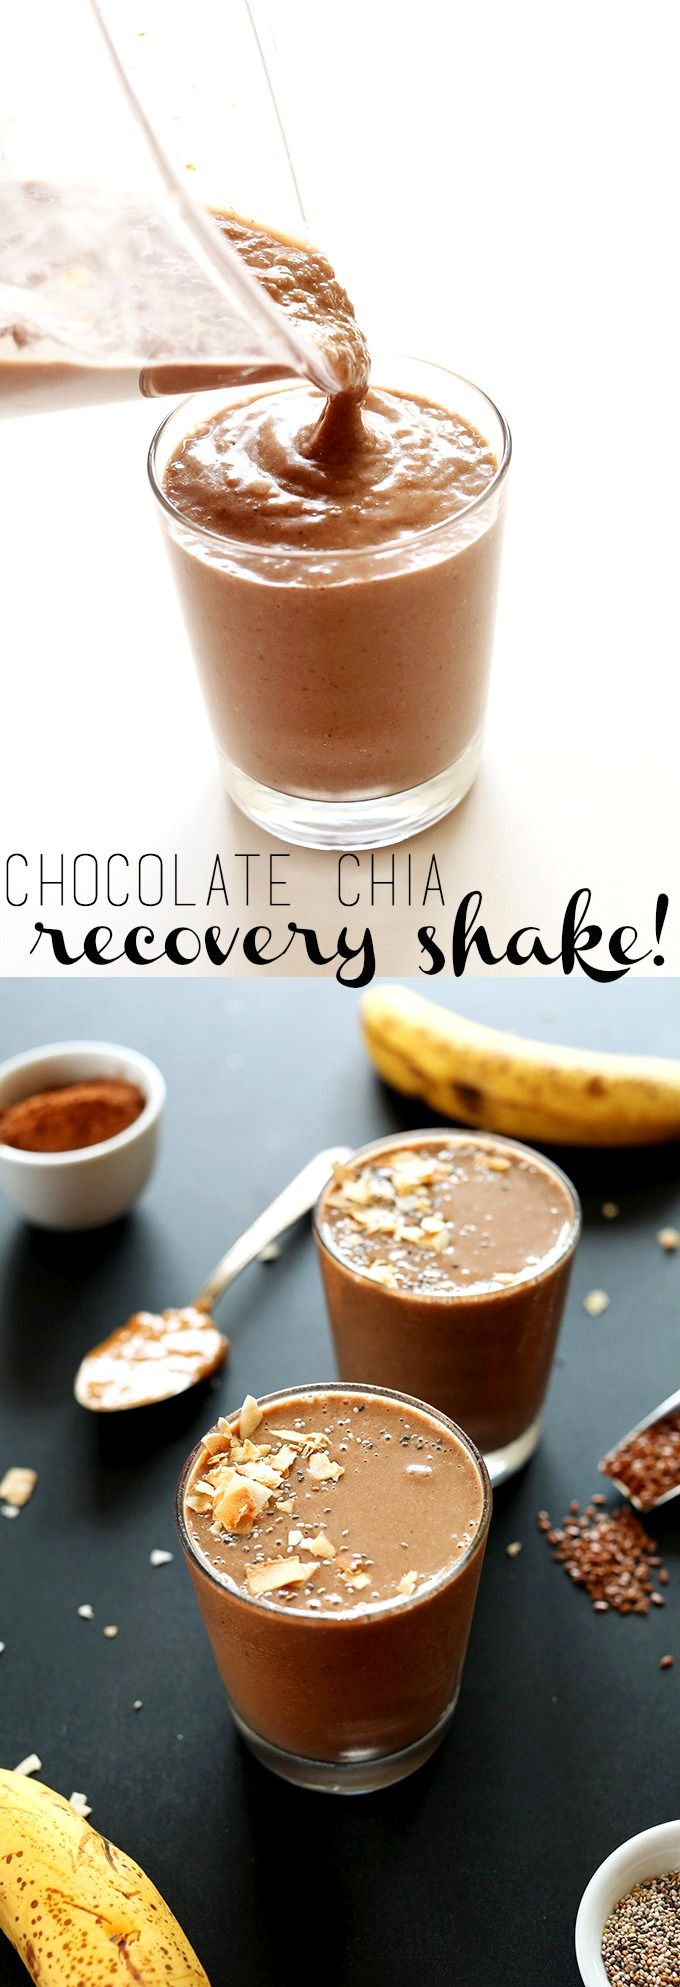 7 ingredient AMAZINGLY creamy and healthy recovery drink! Perfect for post-workout rehydration with loads of protein, healthy fats and just the right amount of sweetness! #vegan #glutenfree #CrackLifeOpen